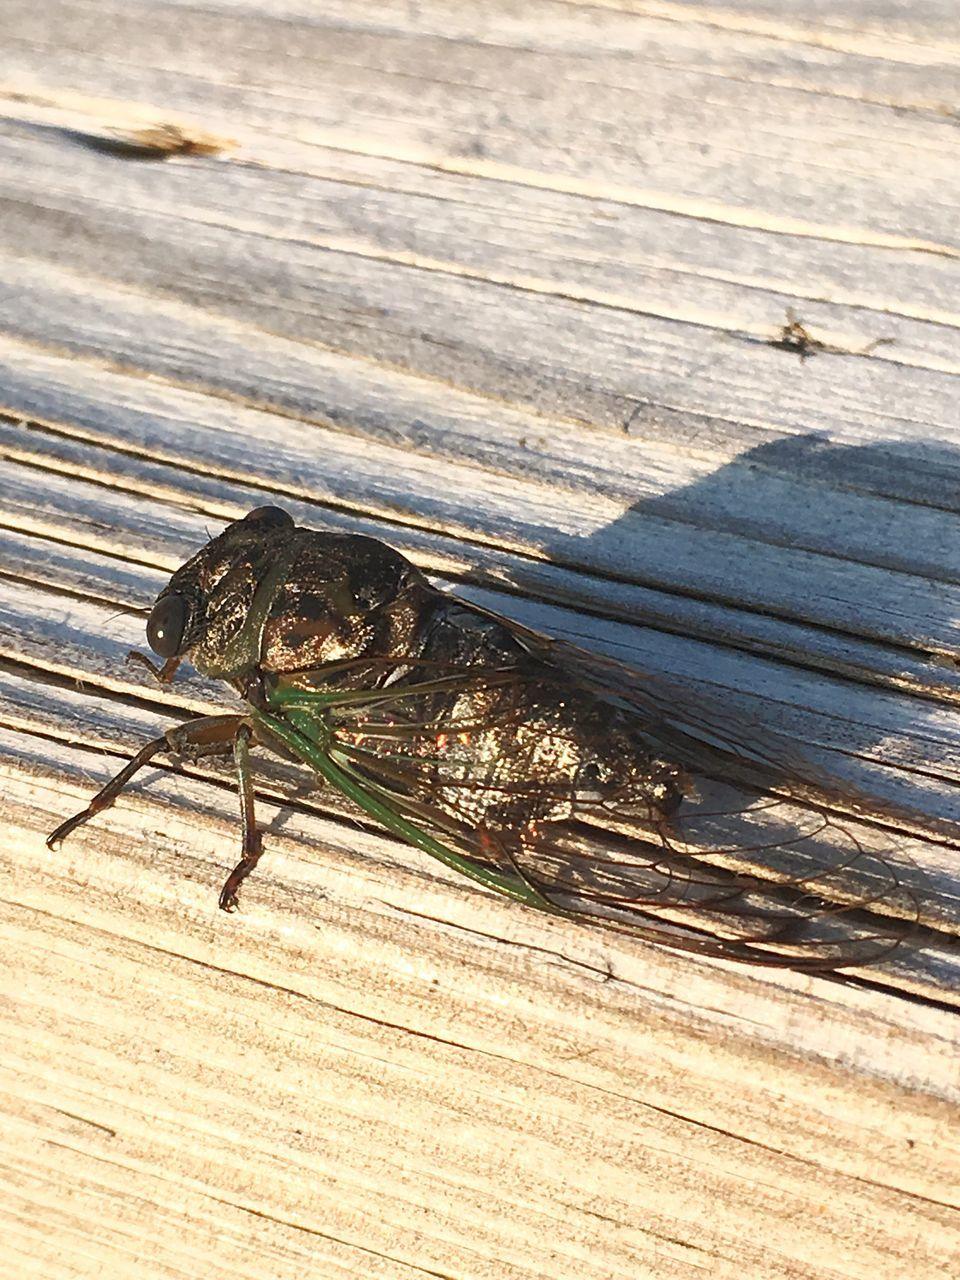 animals in the wild, one animal, animal themes, animal wildlife, wood - material, insect, table, no people, day, outdoors, nature, sunlight, close-up